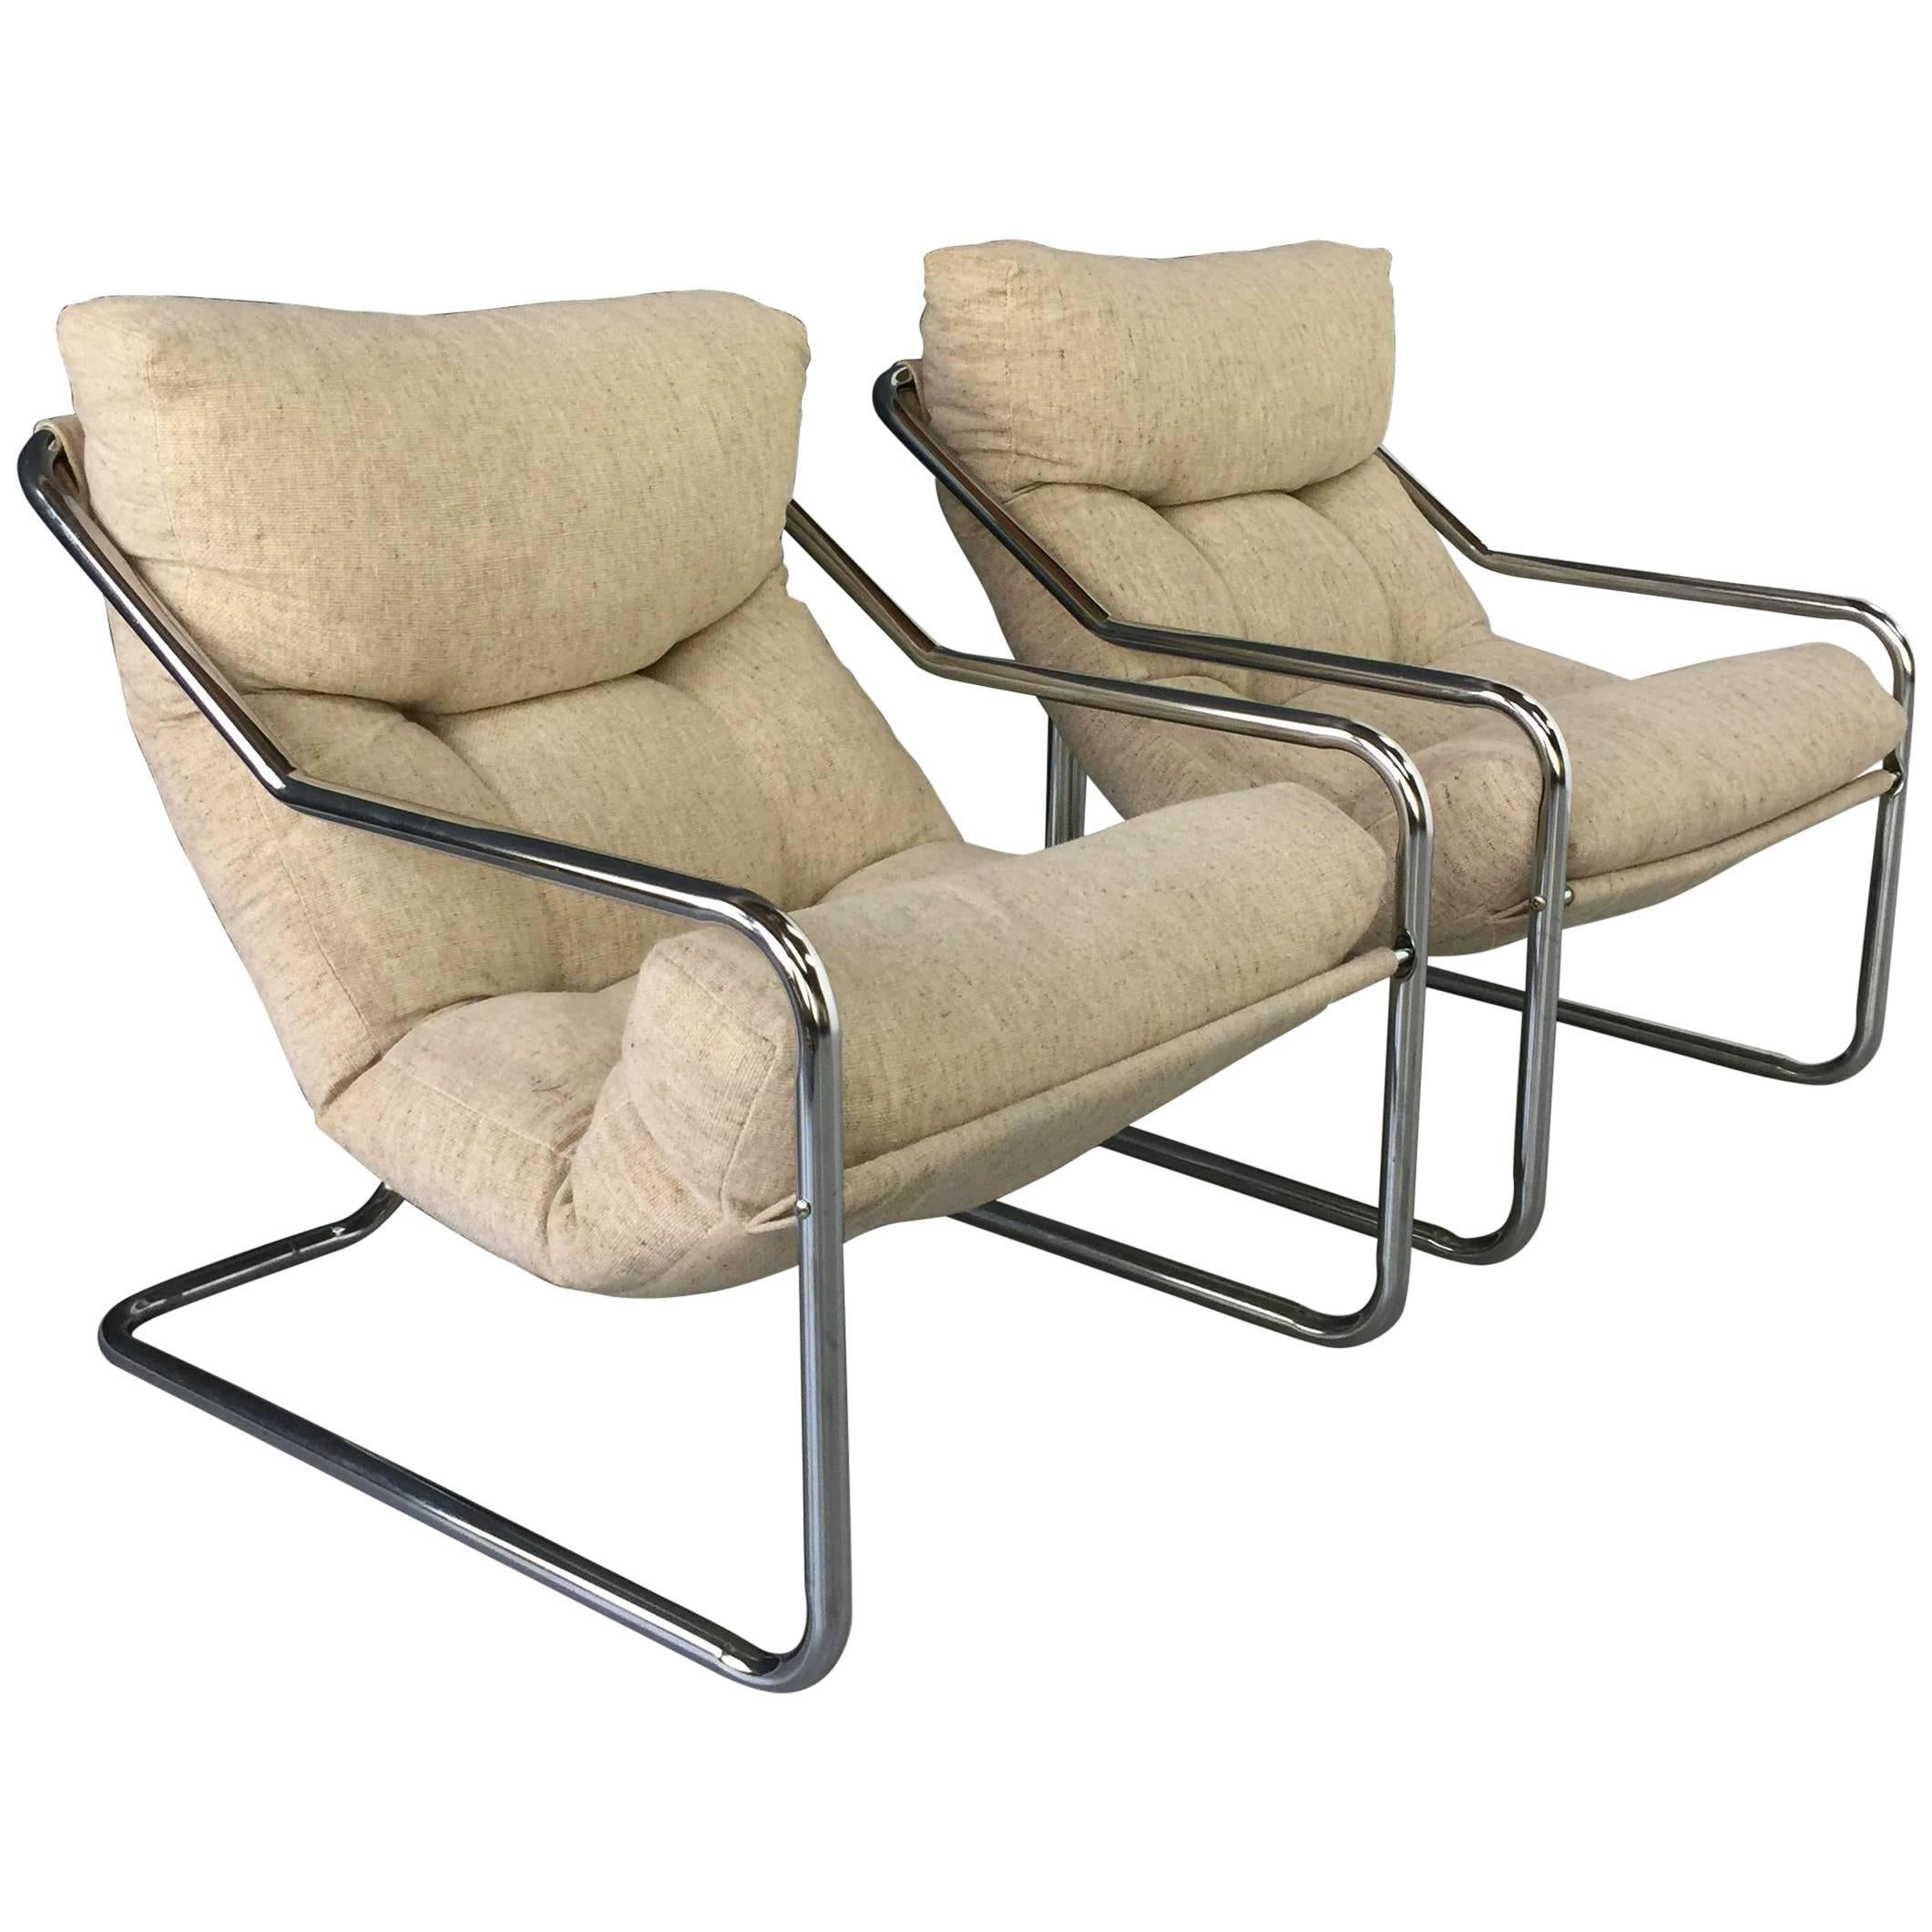 Pair of White 1970s Chrome Sling Chairs For Sale  sc 1 st  1stDibs & Pair of White 1970s Chrome Sling Chairs at 1stdibs